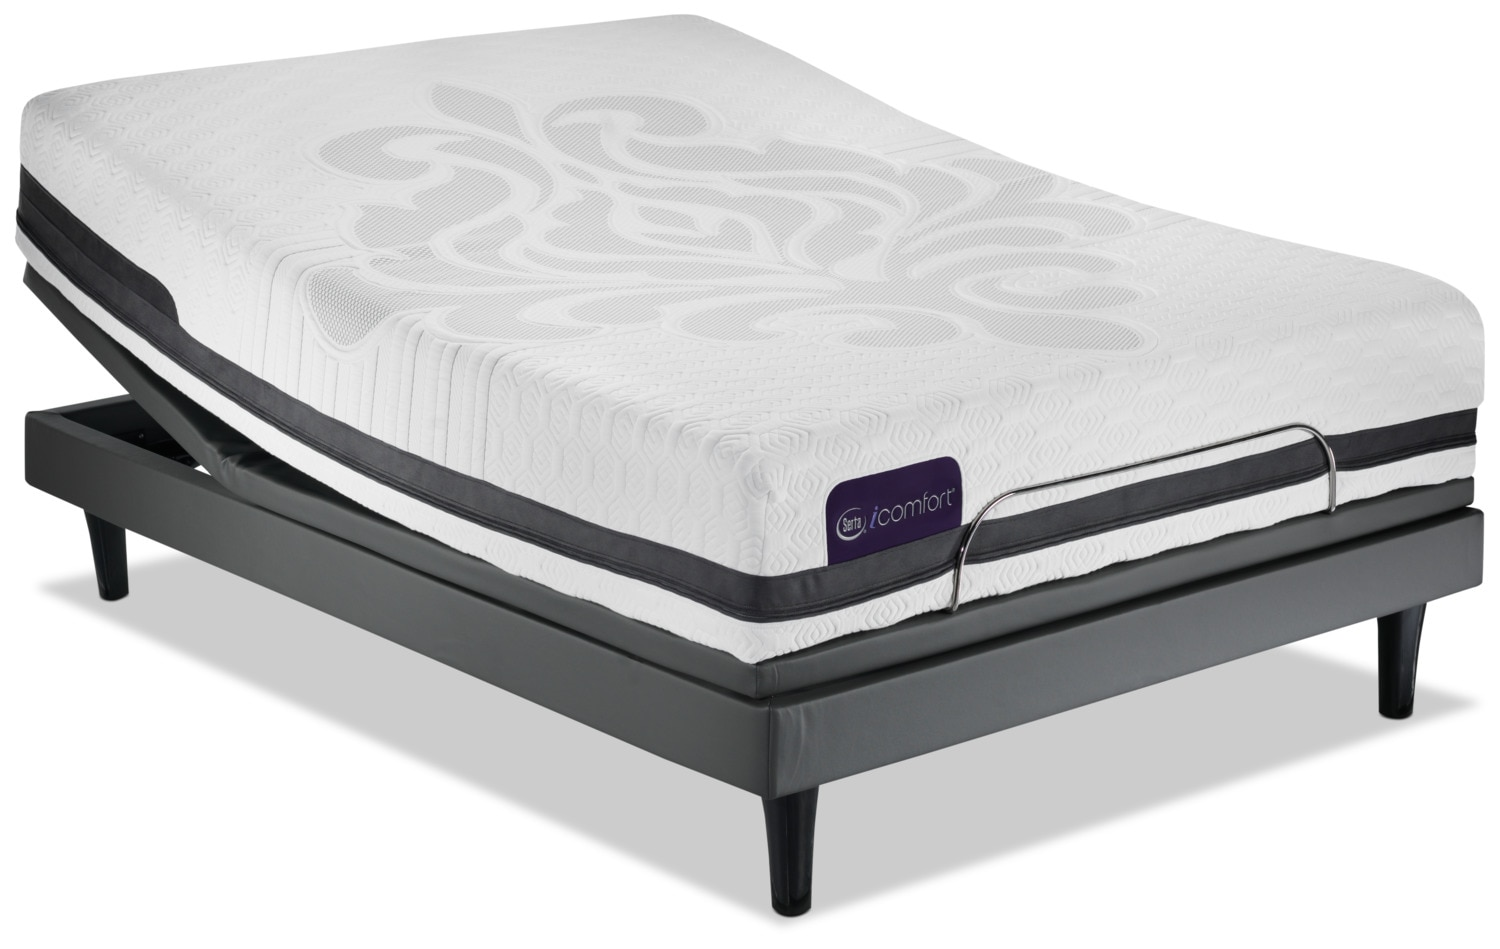 Serta iComfort Eco Peacefulness Plush King Mattress/Motion Perfect III Complete Adjustable Base